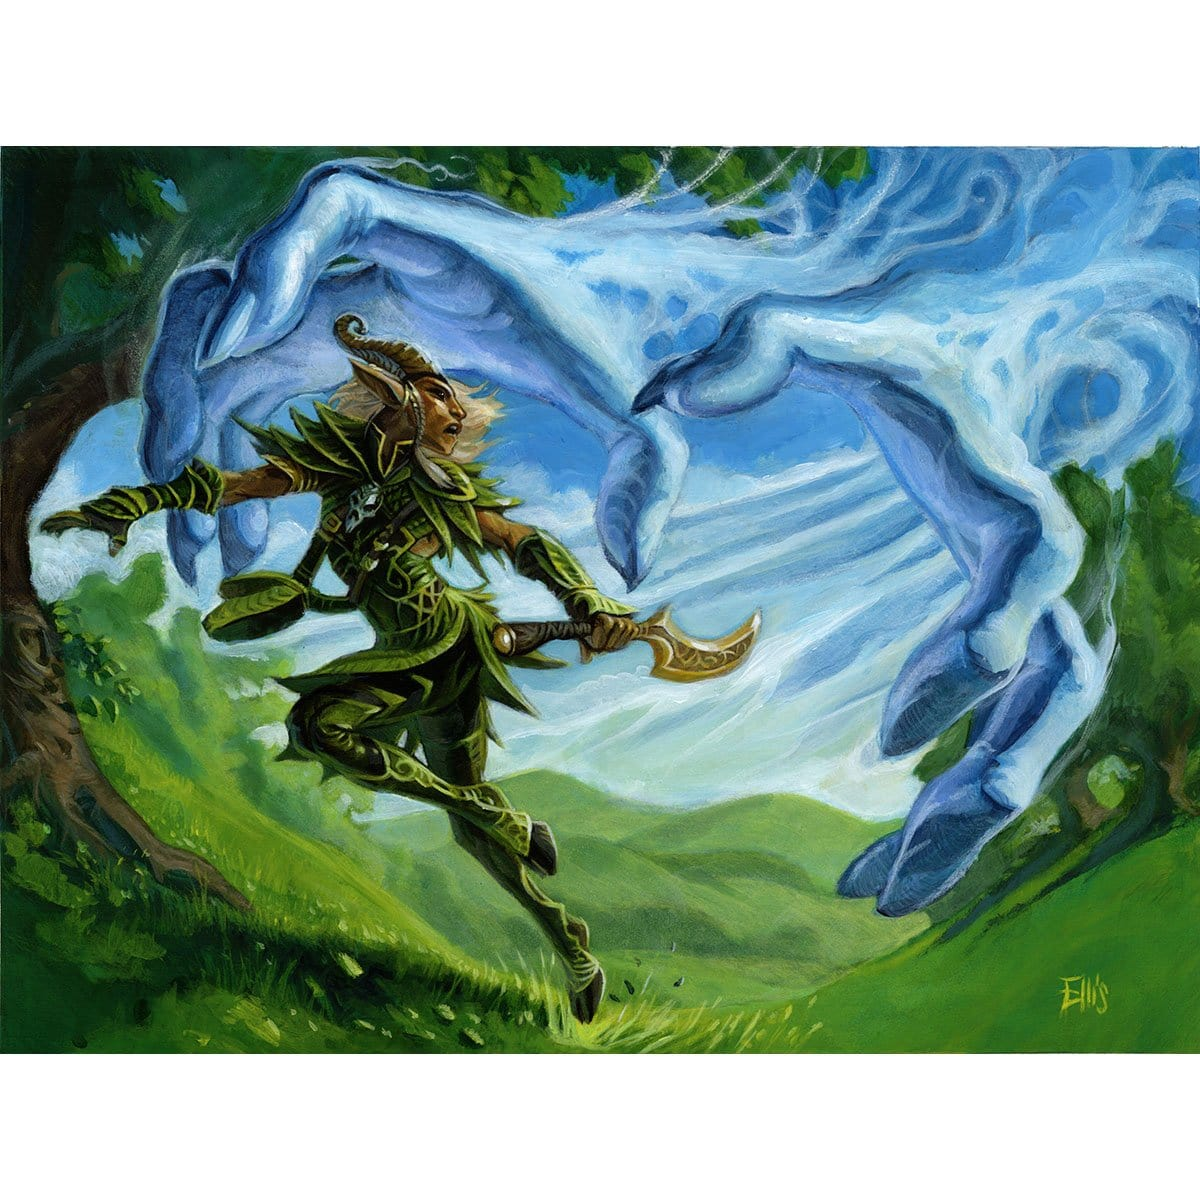 Disperse Print - Print - Original Magic Art - Accessories for Magic the Gathering and other card games